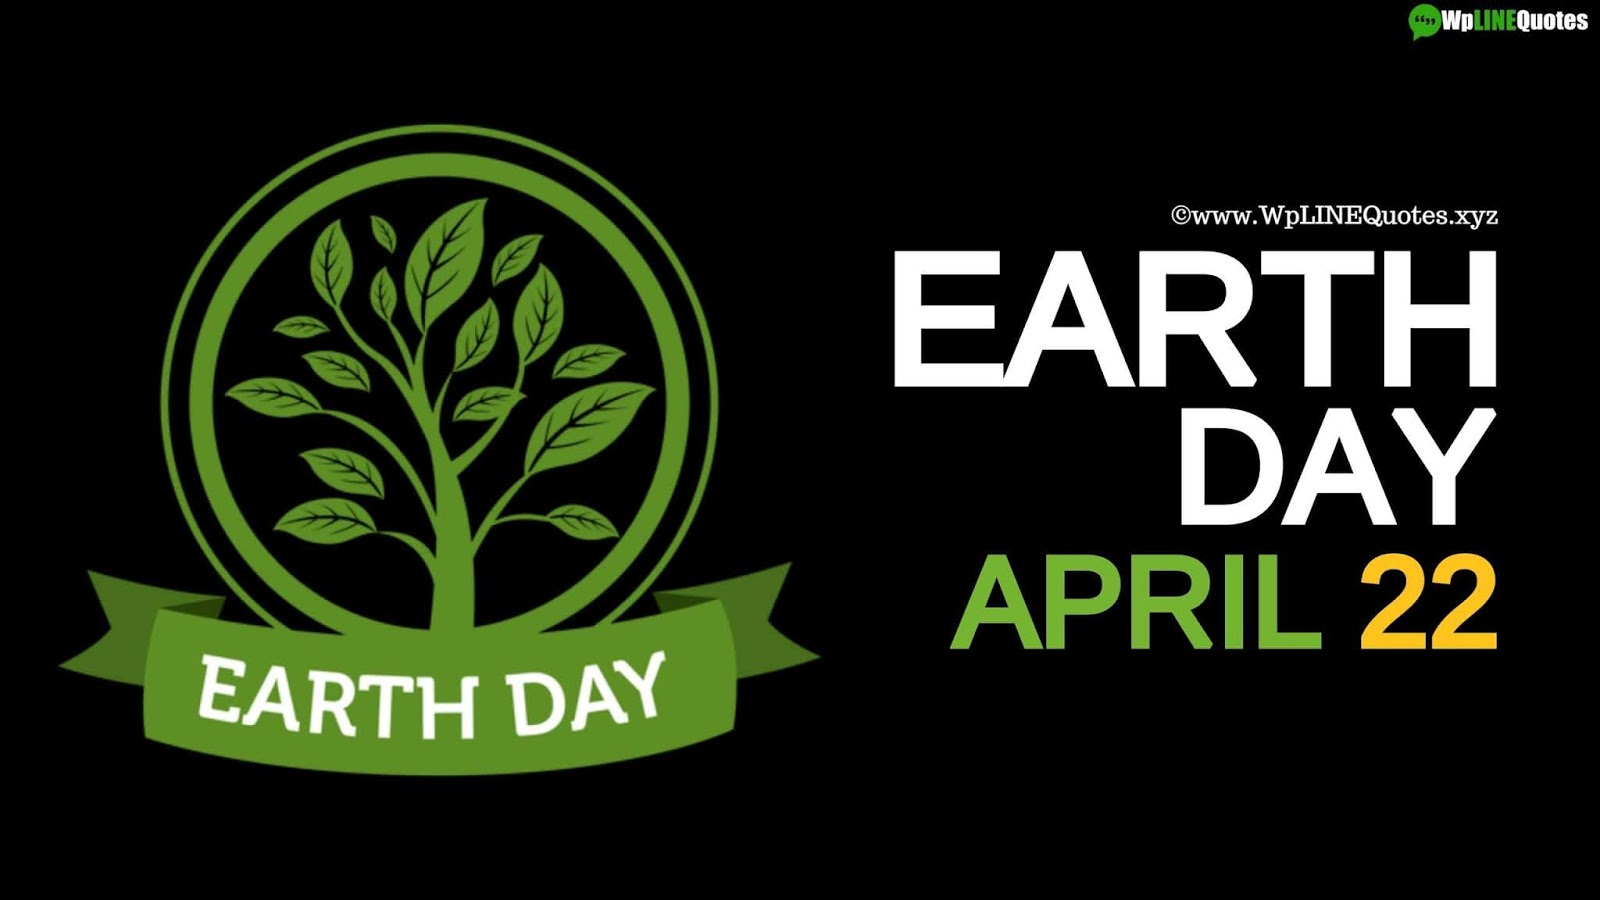 Earth Day Quotes, Wishes, Messages, Slogans, Greetings, Speech, Activities, Theme, History, Facts, Images, Poster, Pictures, Drawing, Wallpaper